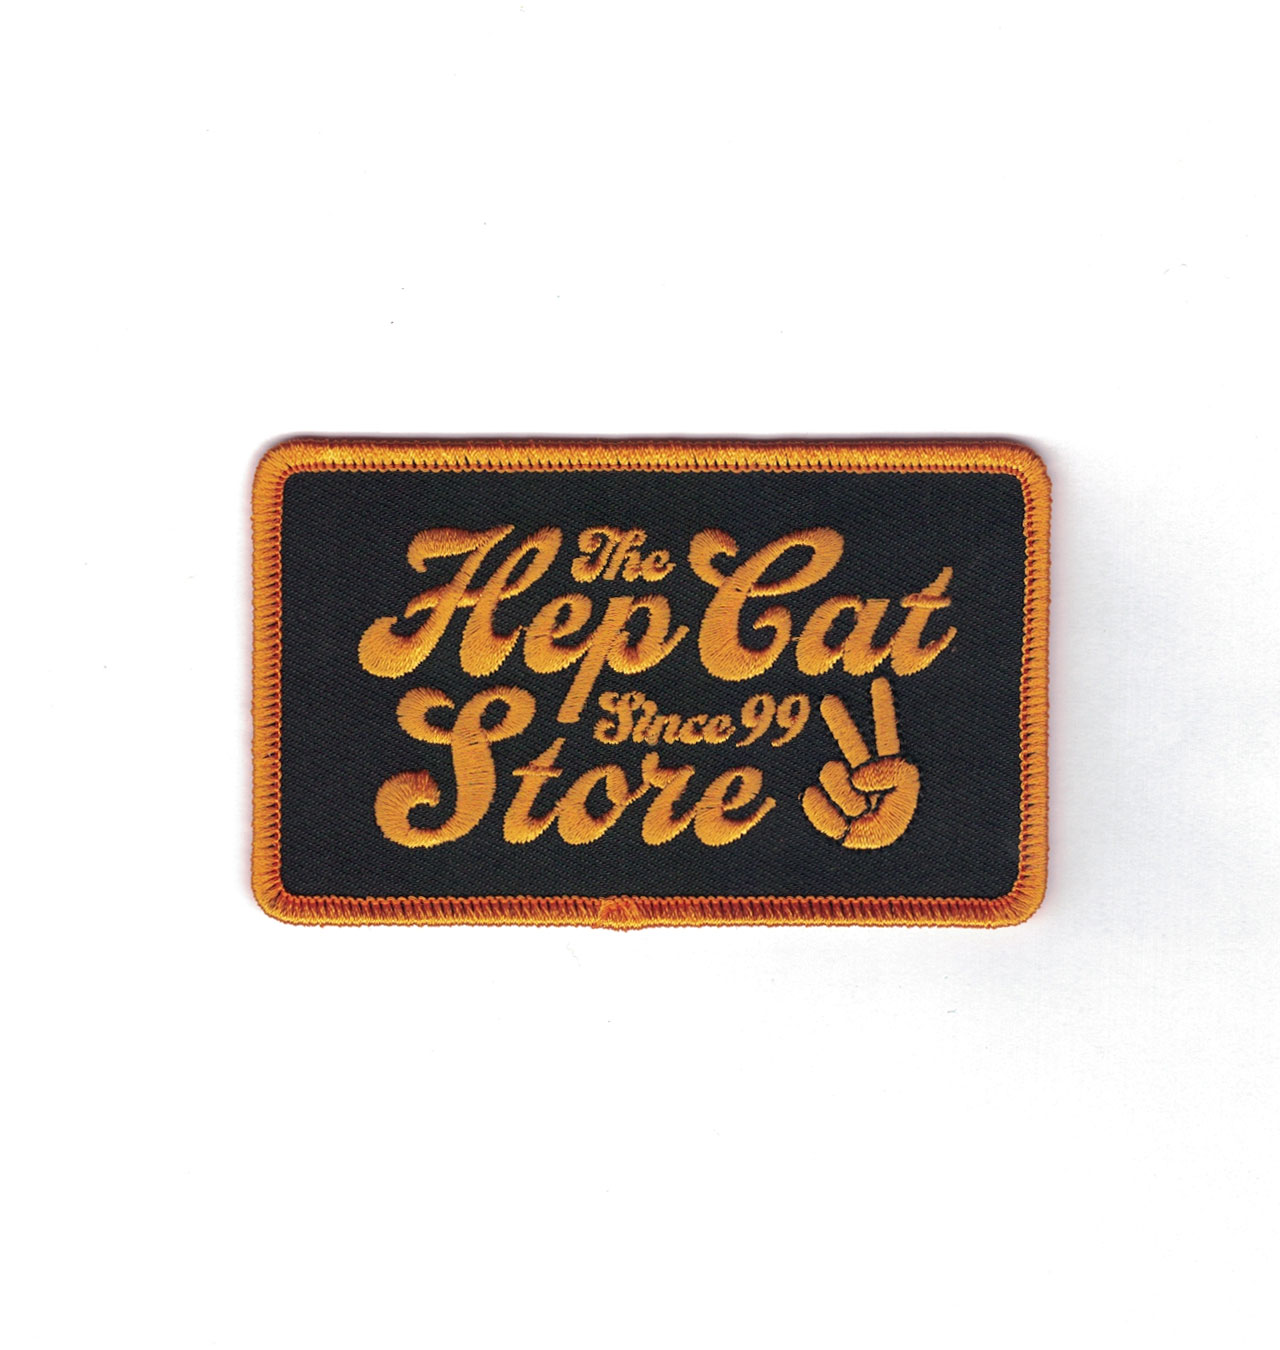 HepCat - The V Since 1999 Patch